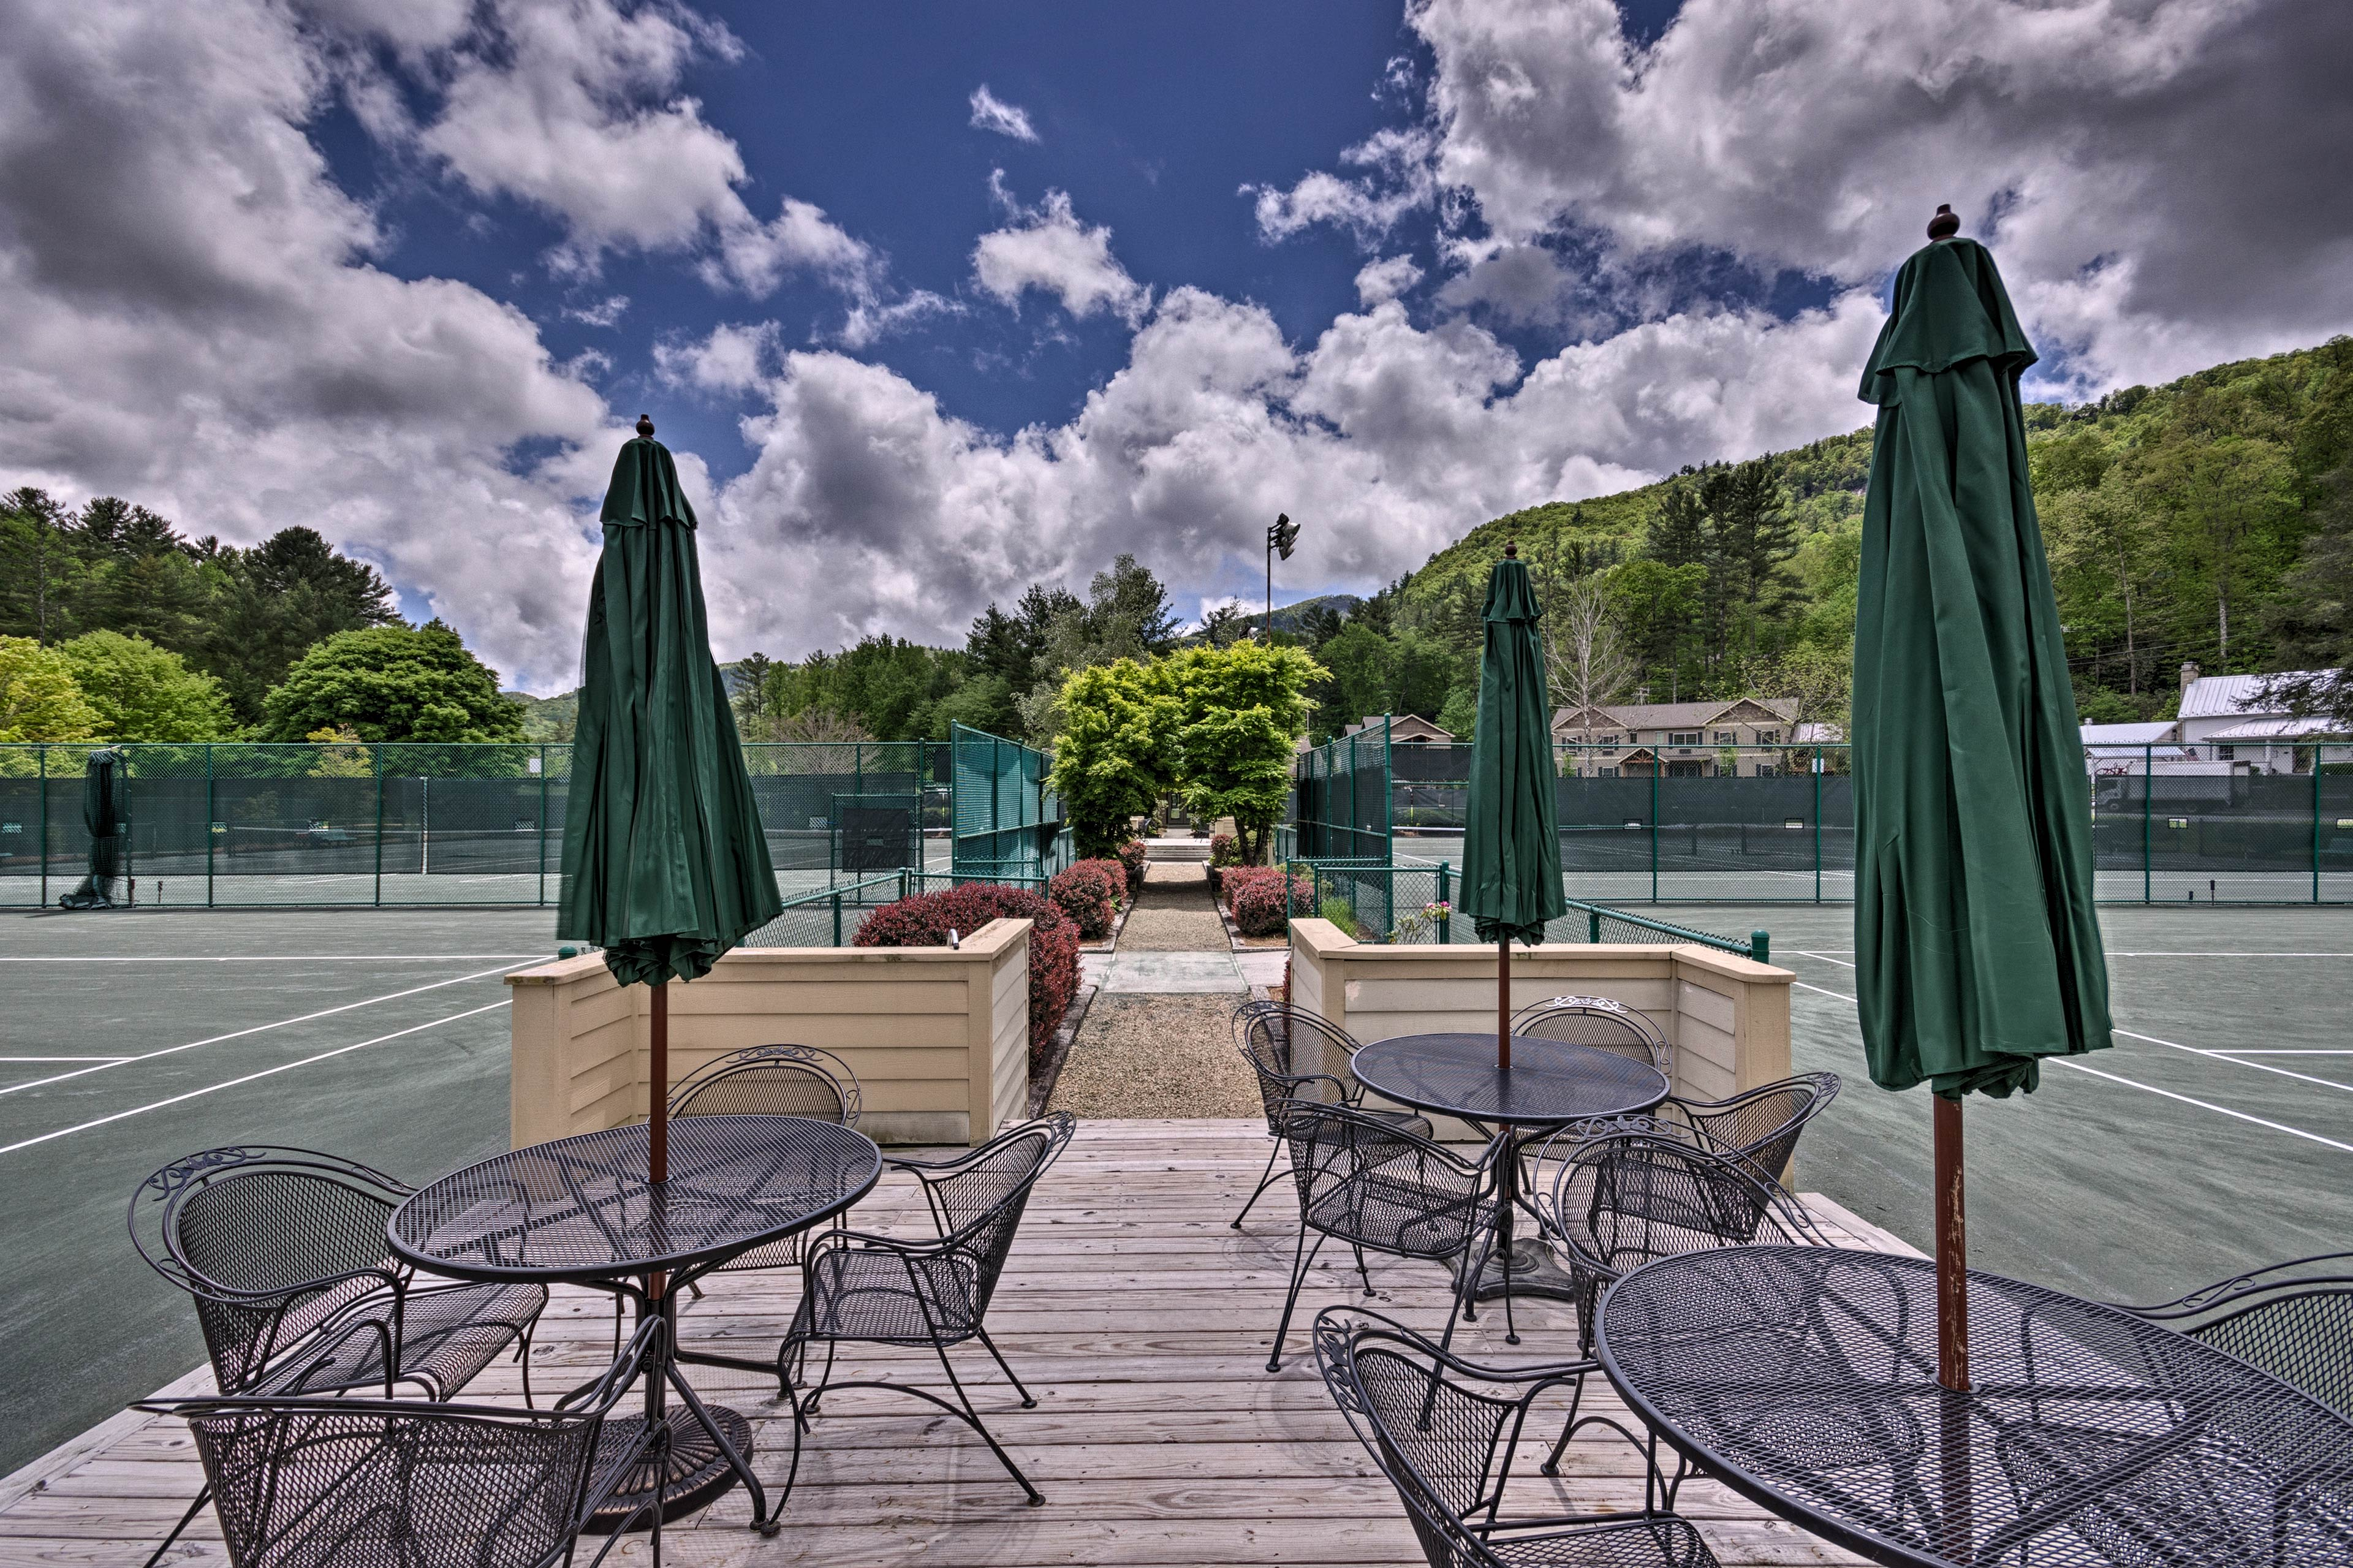 The Sapphire Valley Resort also offers multiple tennis courts.